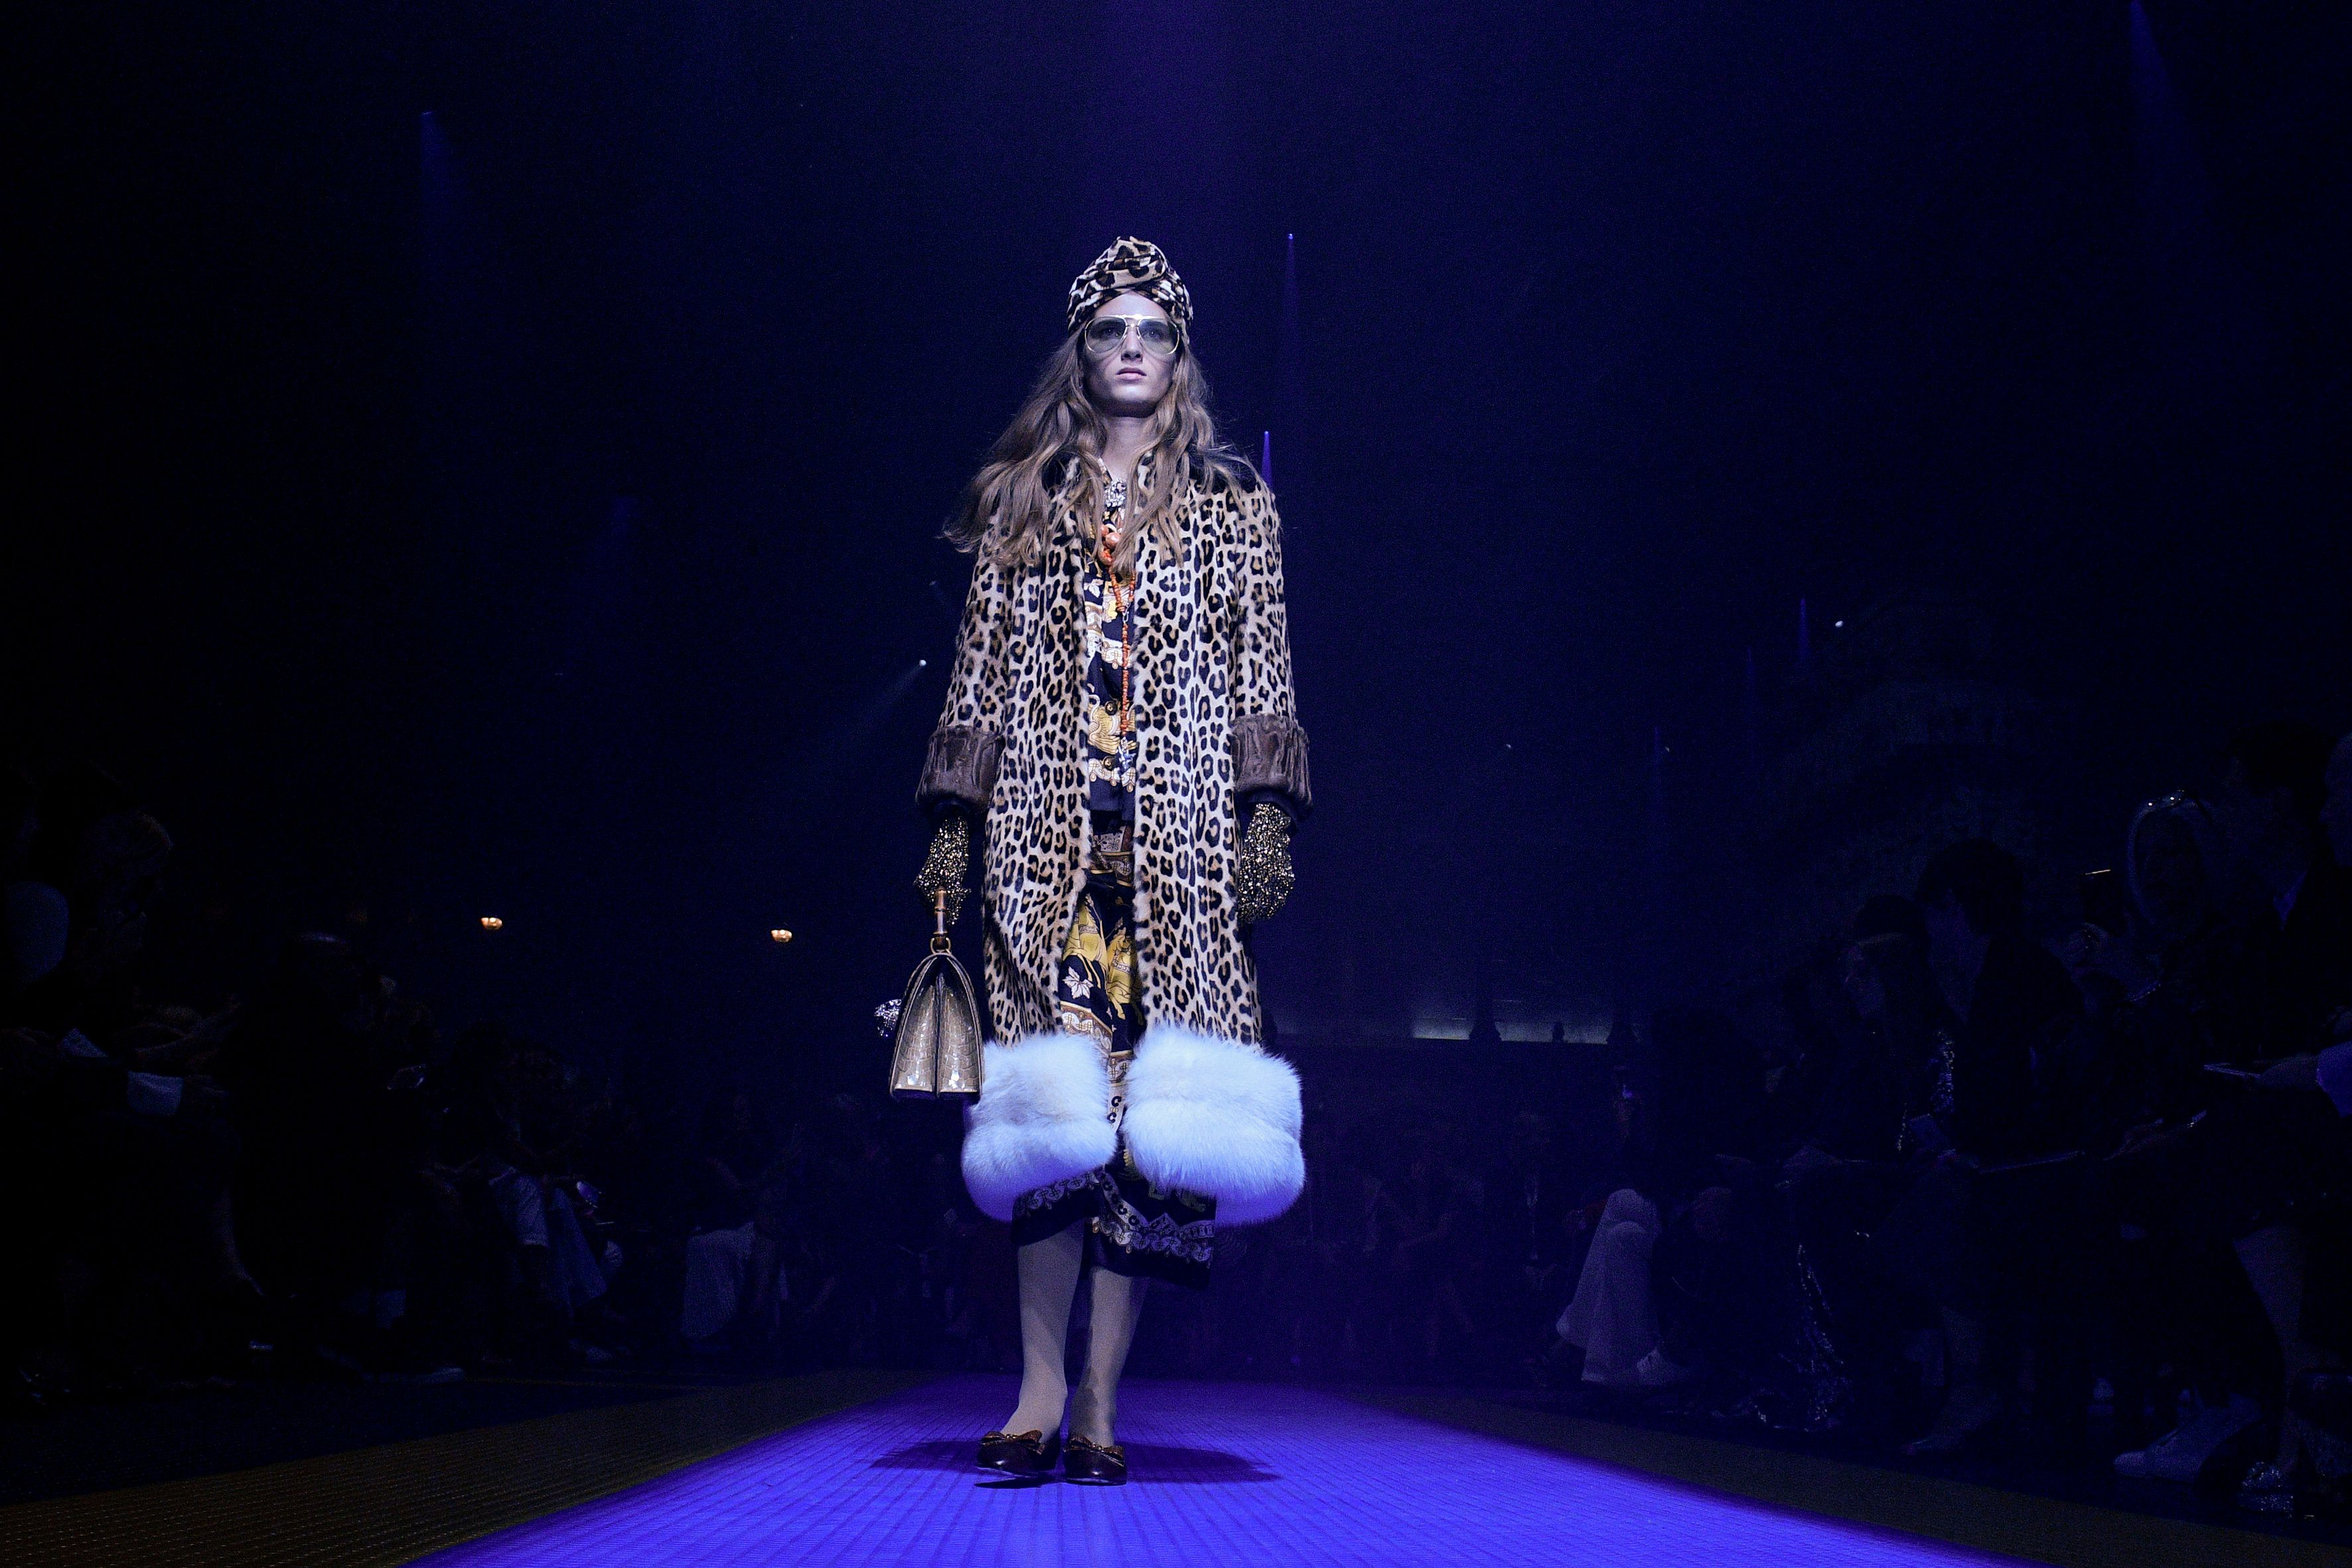 Gucci's New Sustainable Stance On Going Fur-Free Is A Fashion Game-Changer